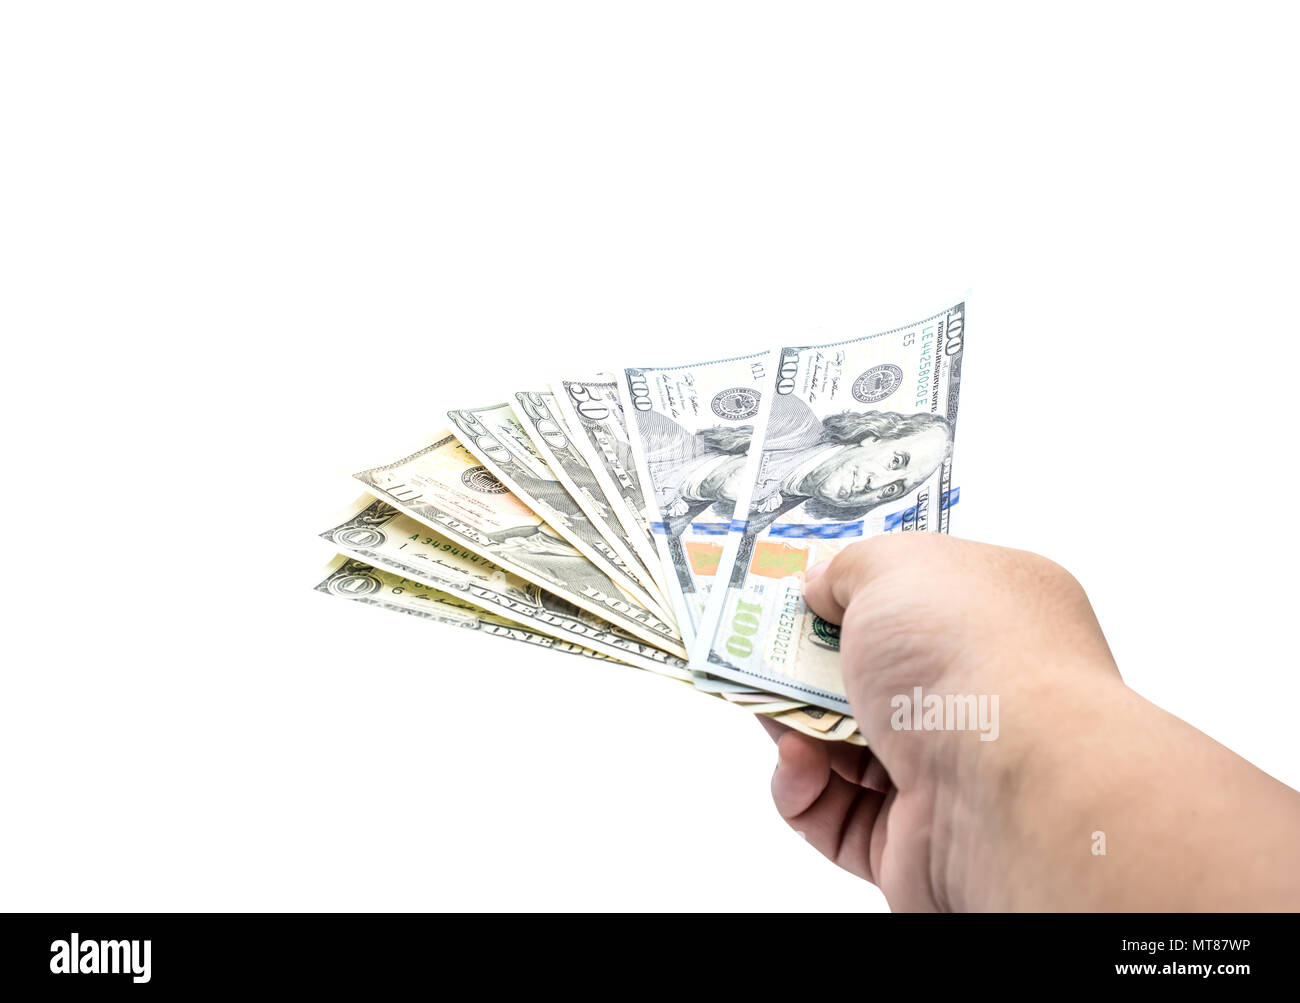 US Dollar currency, Banknotes of America, isolated with path - Stock Image